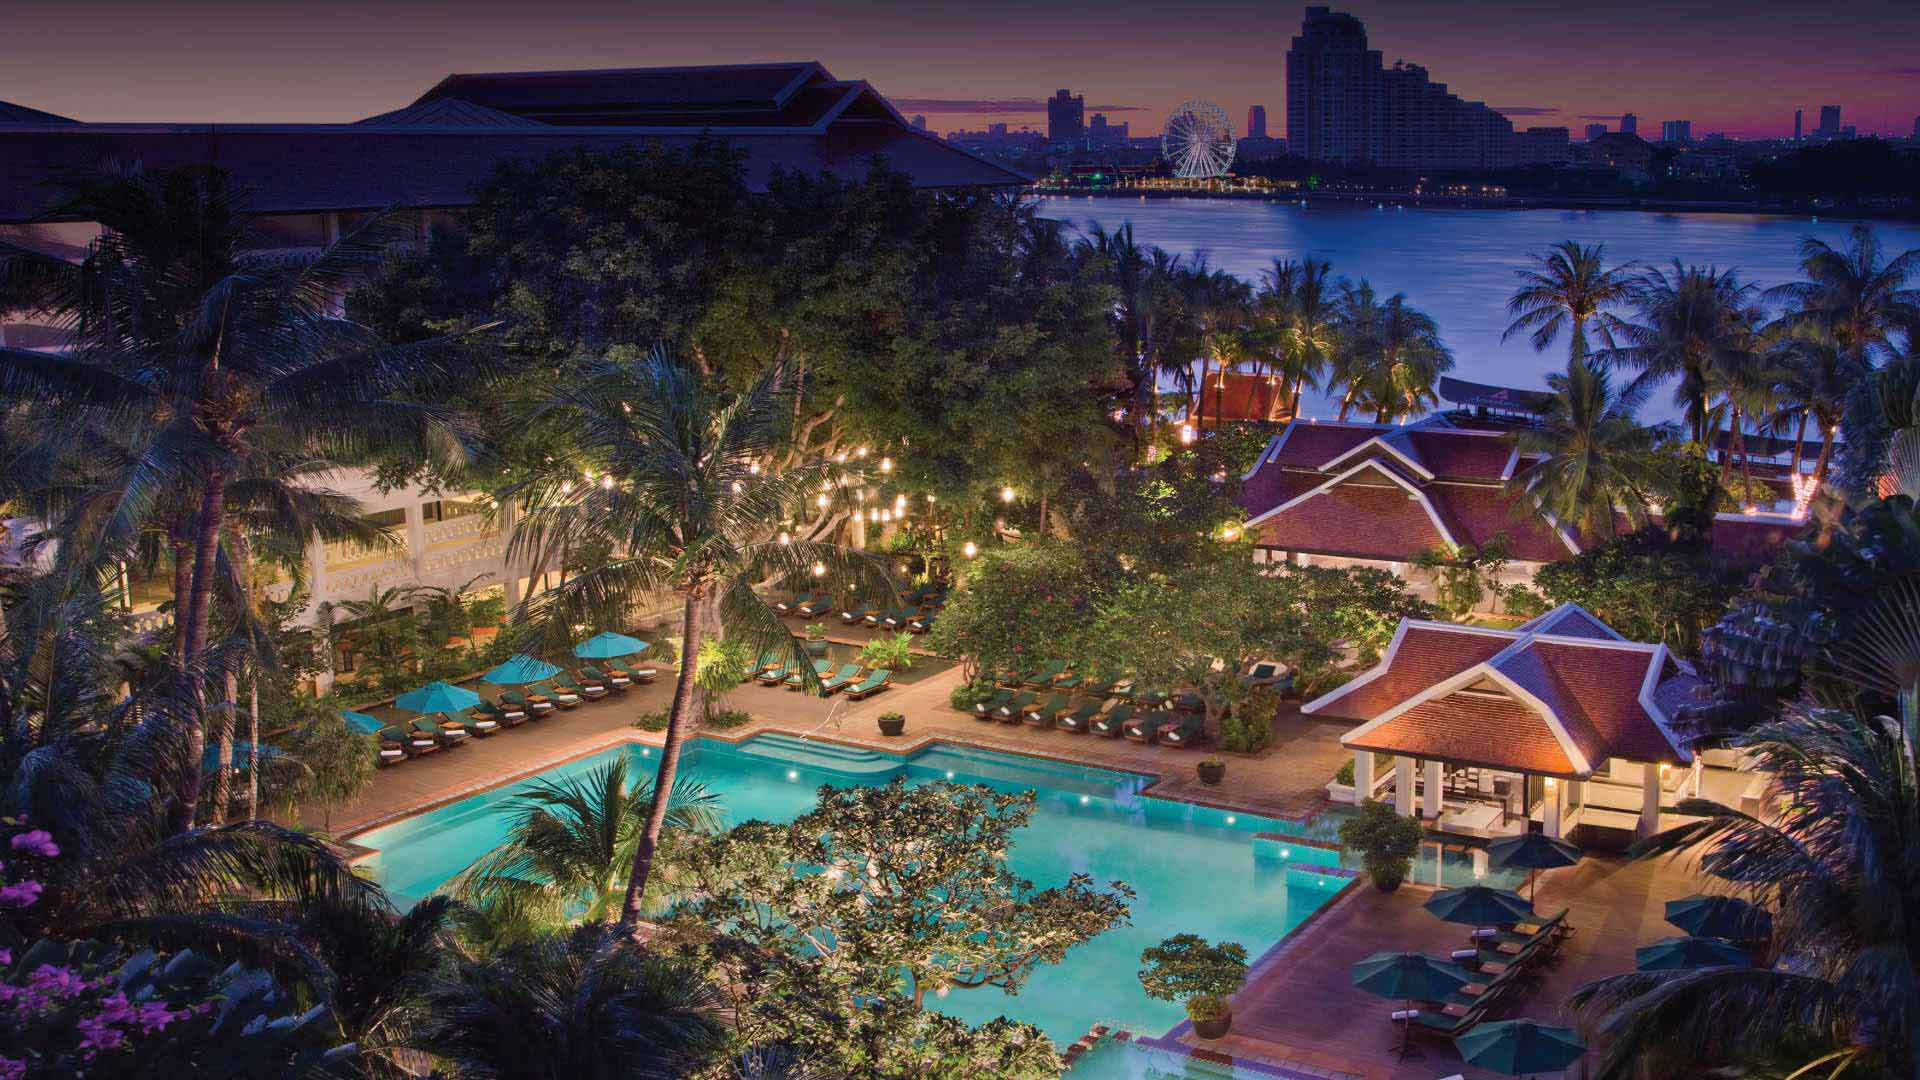 https://assets.anantara.com/image/upload/q_auto,f_auto/media/minor/anantara/images/anantara-riverside-bangkok-resort/the-resort/desktop-banner/anantarariverside_overview_header_1920x1080.jpg